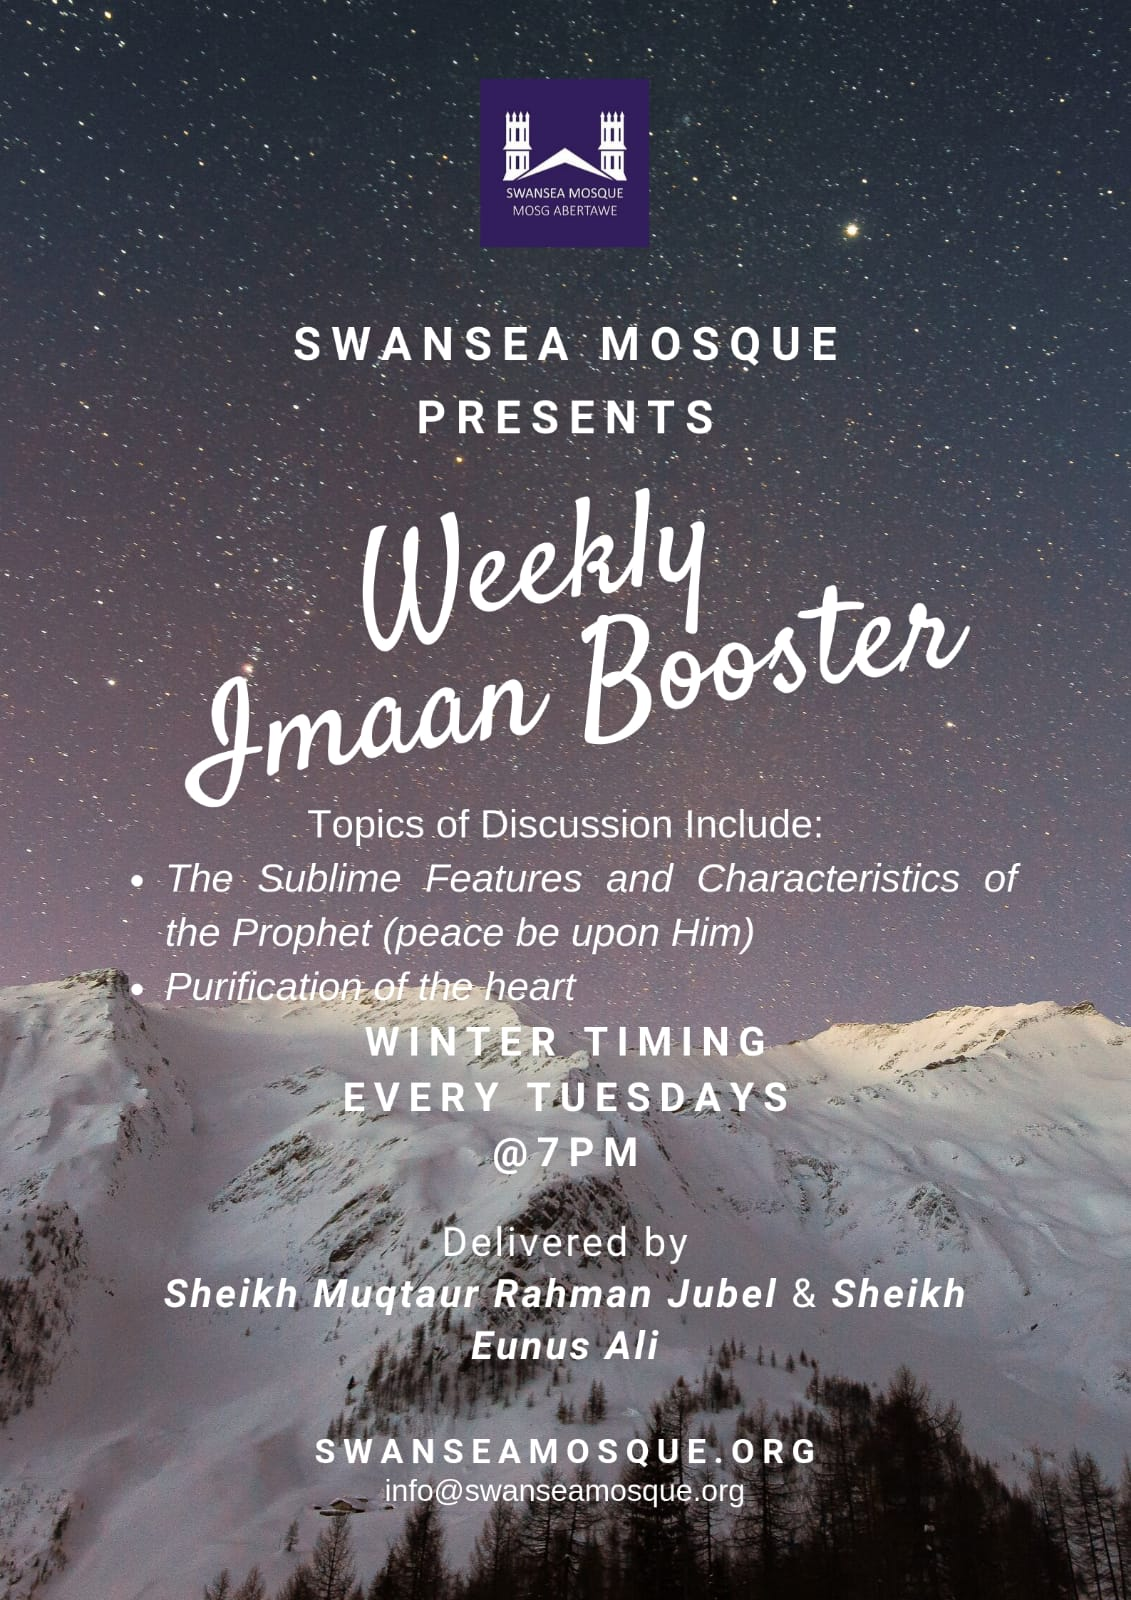 Weekly Imaan Booster